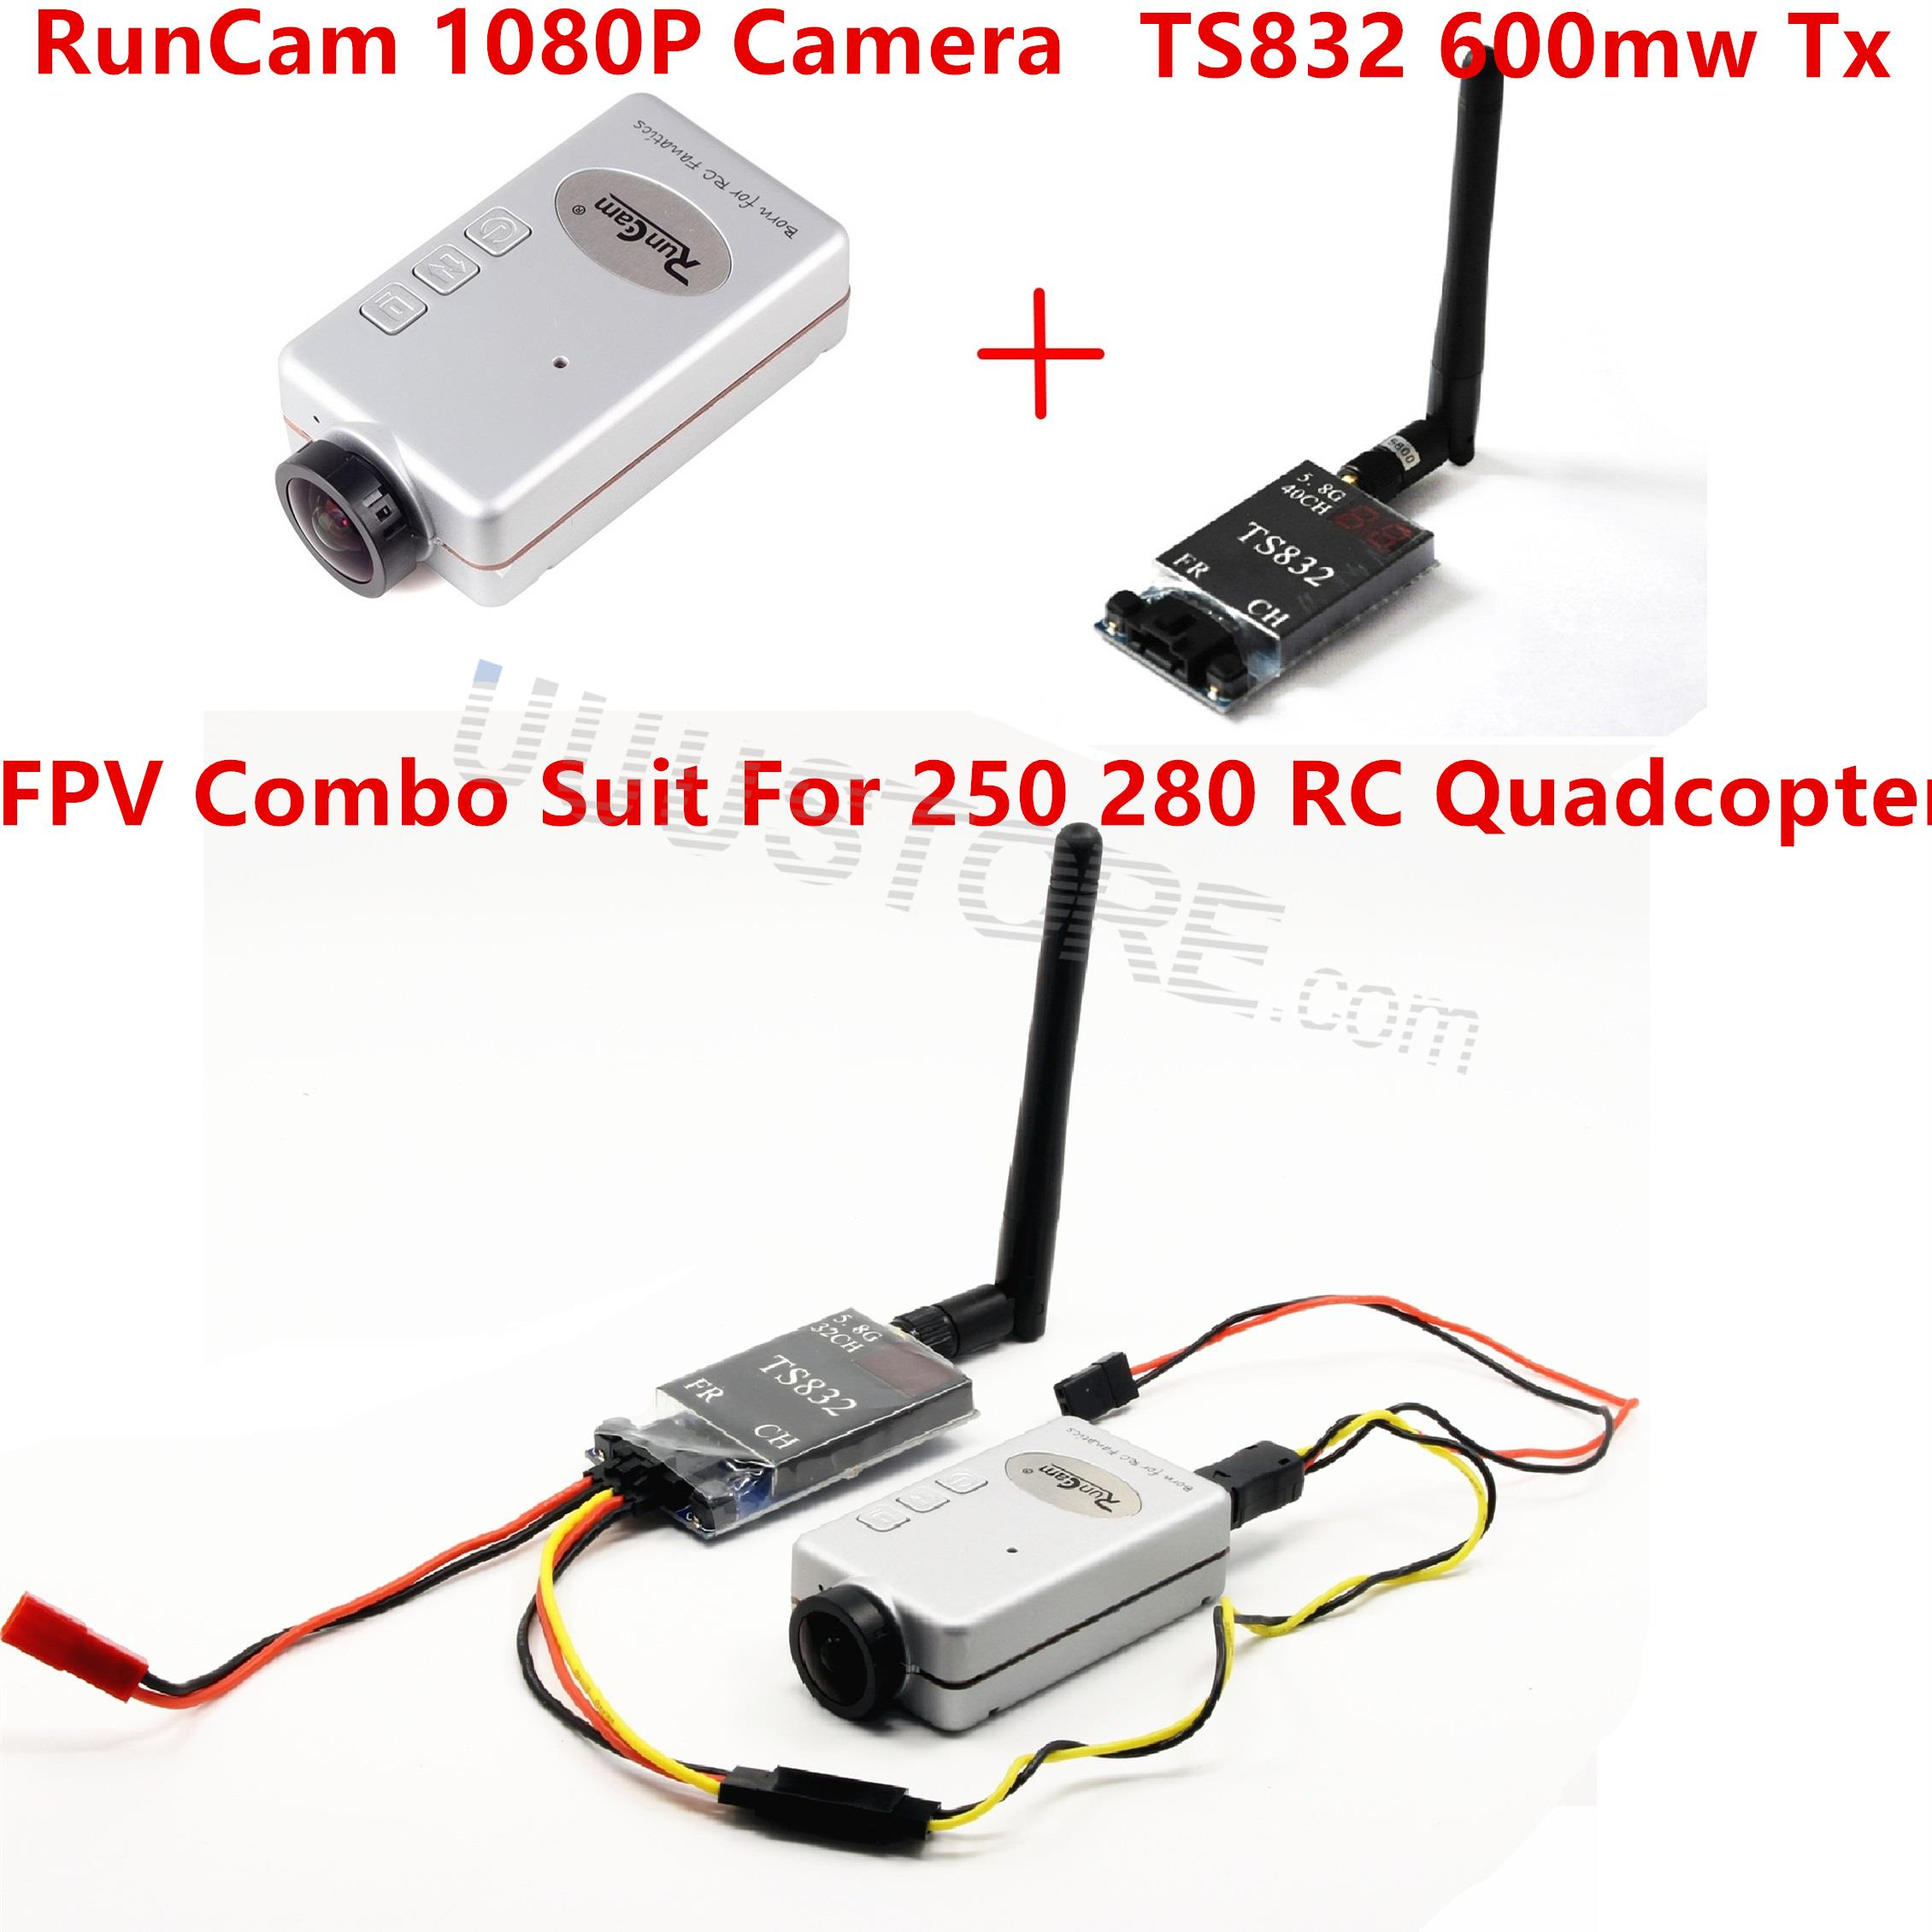 Mini FPV Combo with DVR RunCam 1080P TS832 Video Transmitter For Racing Drone QAV250 RC Quadcopter drone with camera rc plane qav 250 carbon frame f3 flight controller emax rs2205 2300kv motor fiber mini quadcopter